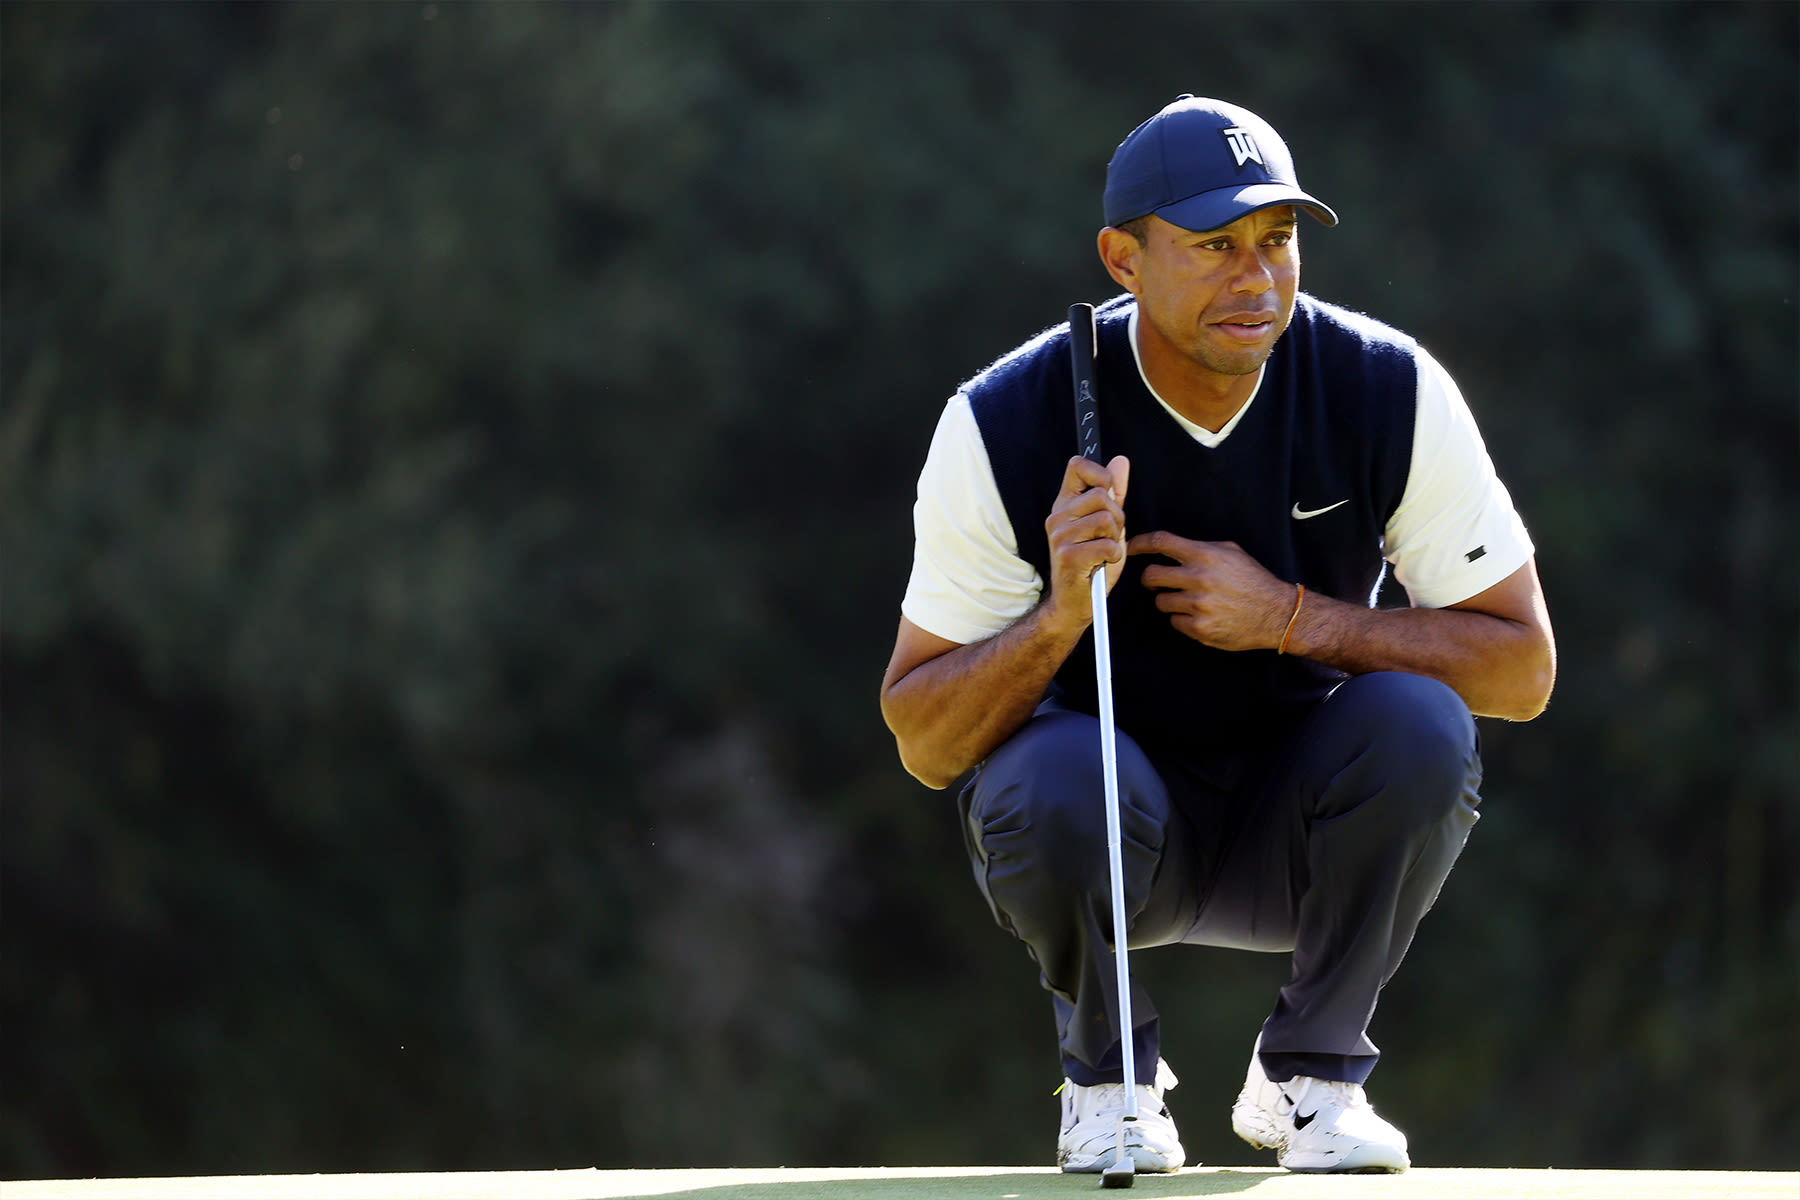 Tiger Woods of the United States lines up a putt on the 12th green during the third round of the Genesis Invitational at Riviera Country Club on February 15, 2020 in Pacific Palisades, California.